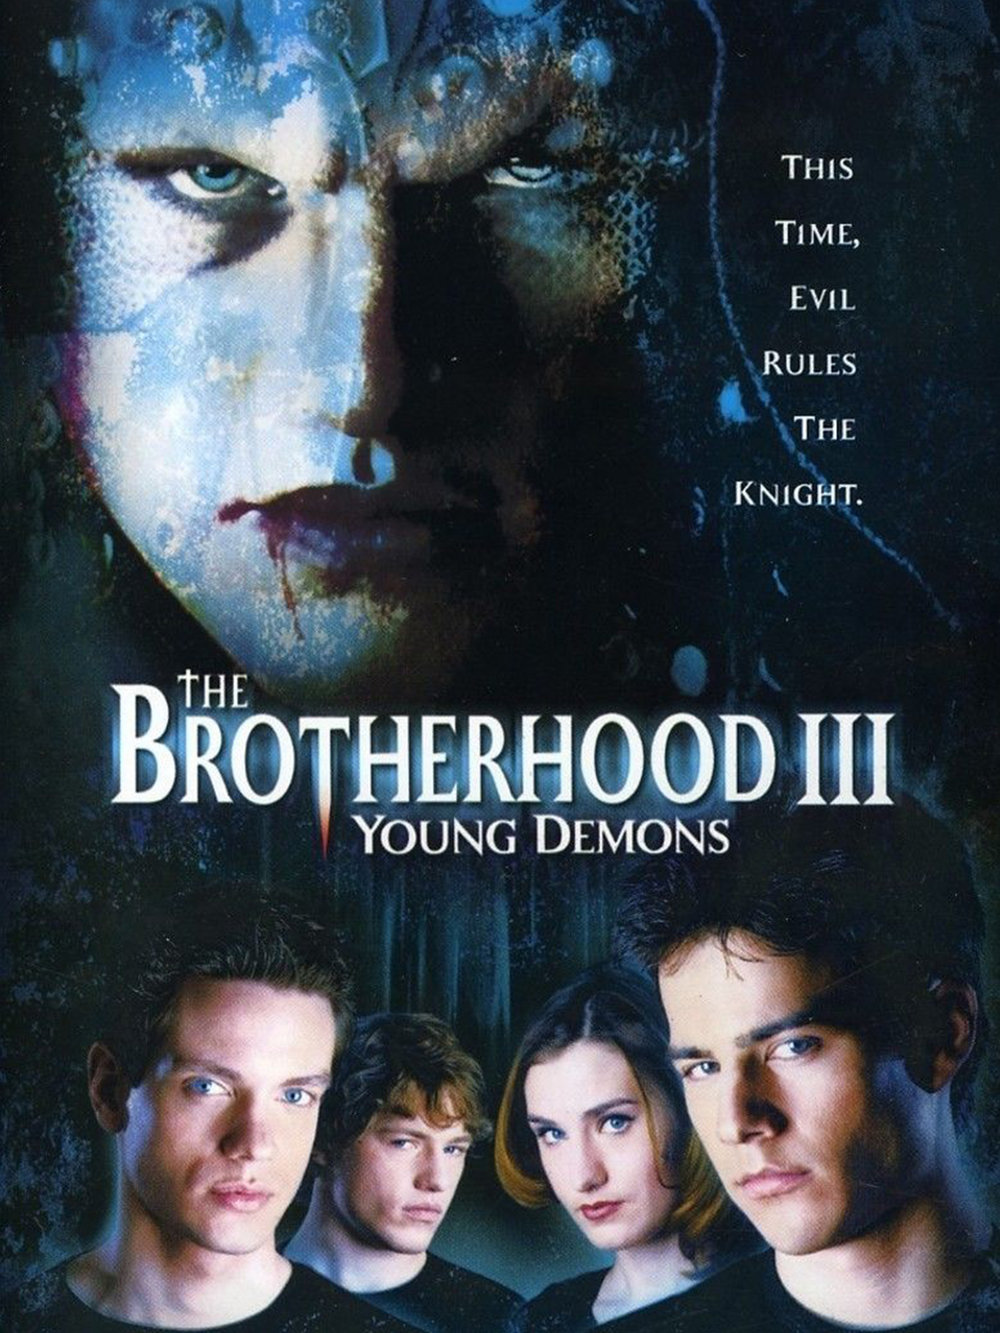 Here-Brotherhood3-Full-Image-en-US.jpg